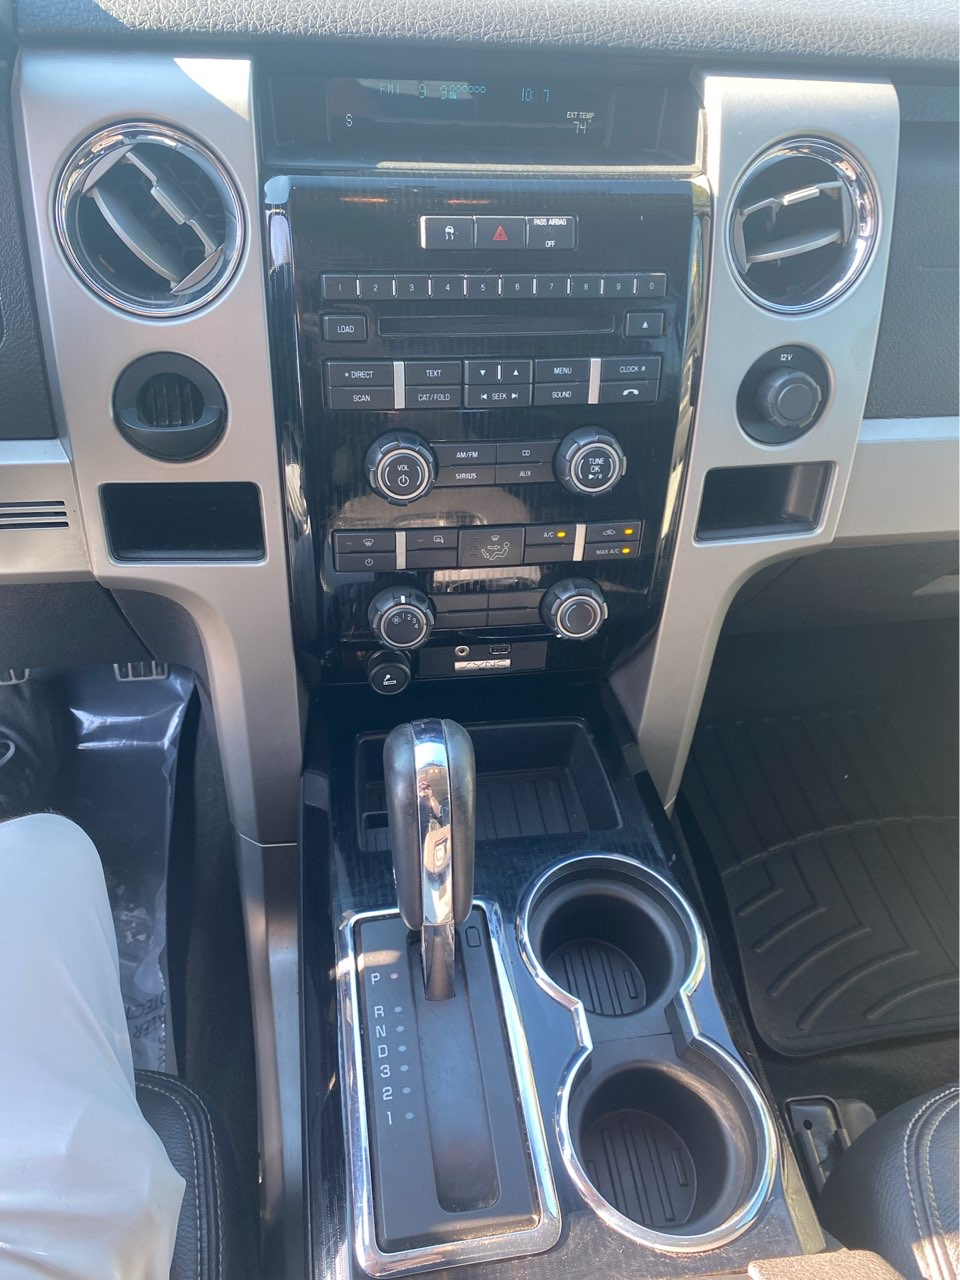 used vehicle - Truck FORD F-150 2010